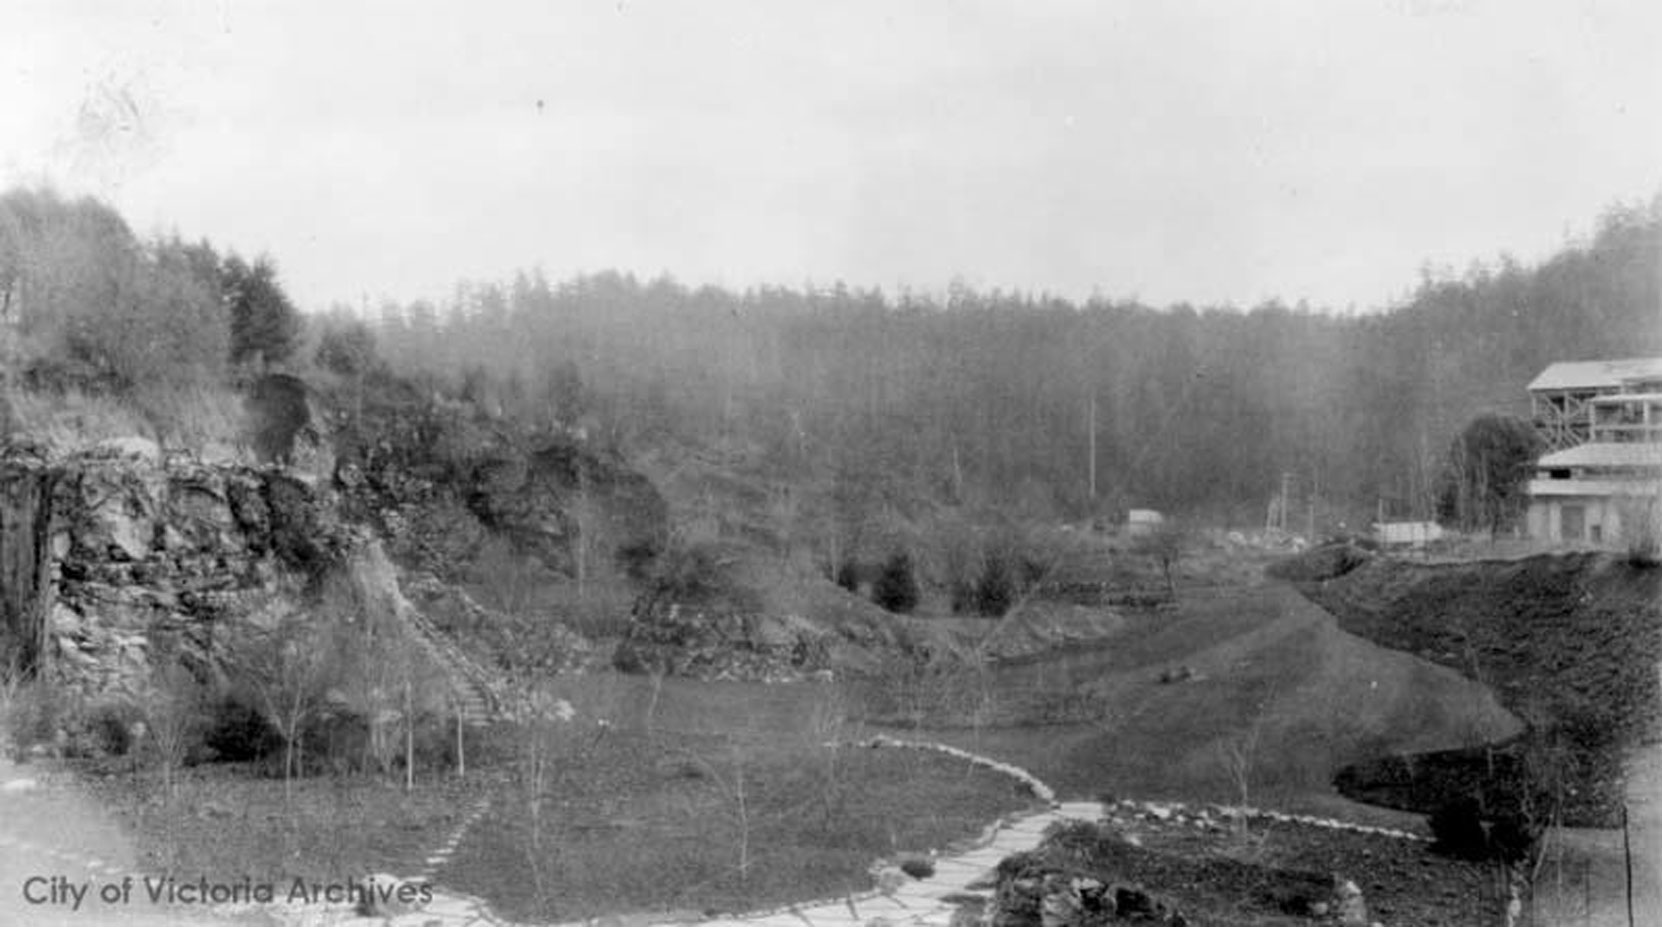 The Vancouver Portland Cement Company plant (right) above the west side of the Sunken Garden and the Mound, circa 1910. This section of the Sunken Garden was designed by Raoul Robillard. (City of Victoria Archives photo M05821)